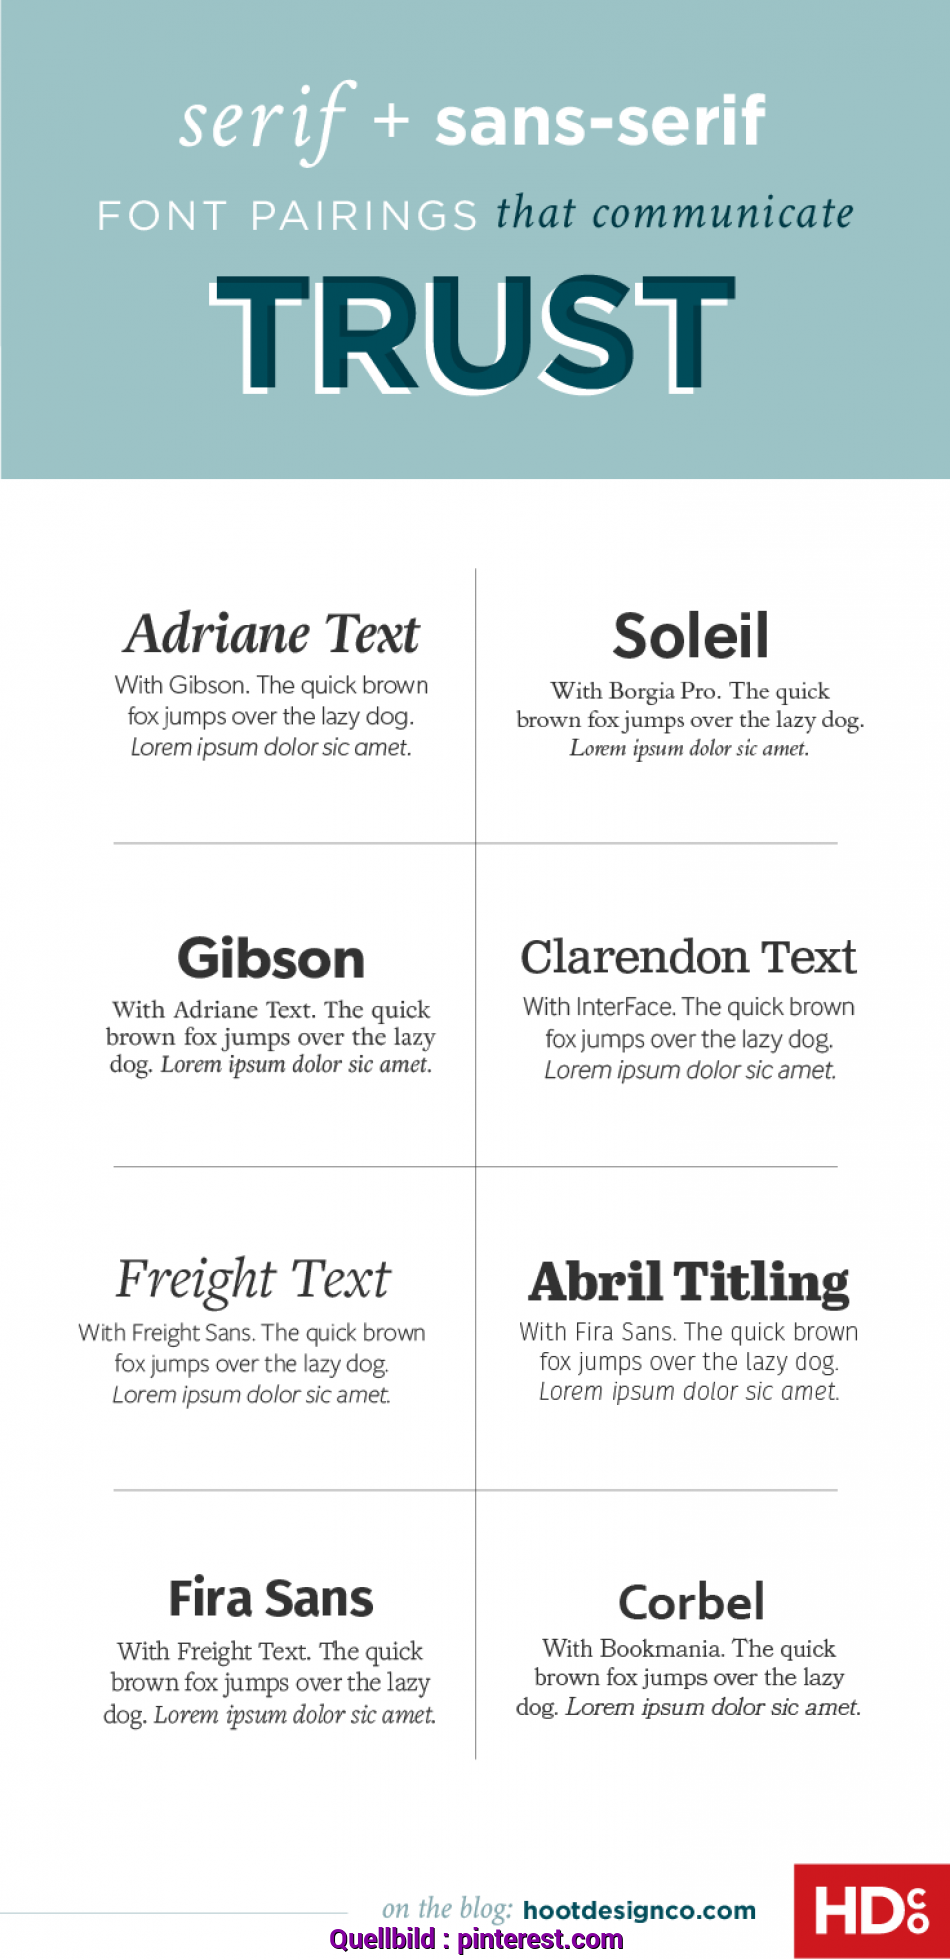 Primär Perfect, Resumes, Pitches, Or Corporate Materials, Font Pairings Communicate Trust By Using Balanced Proportions, Steady Shapes, Stable Balance